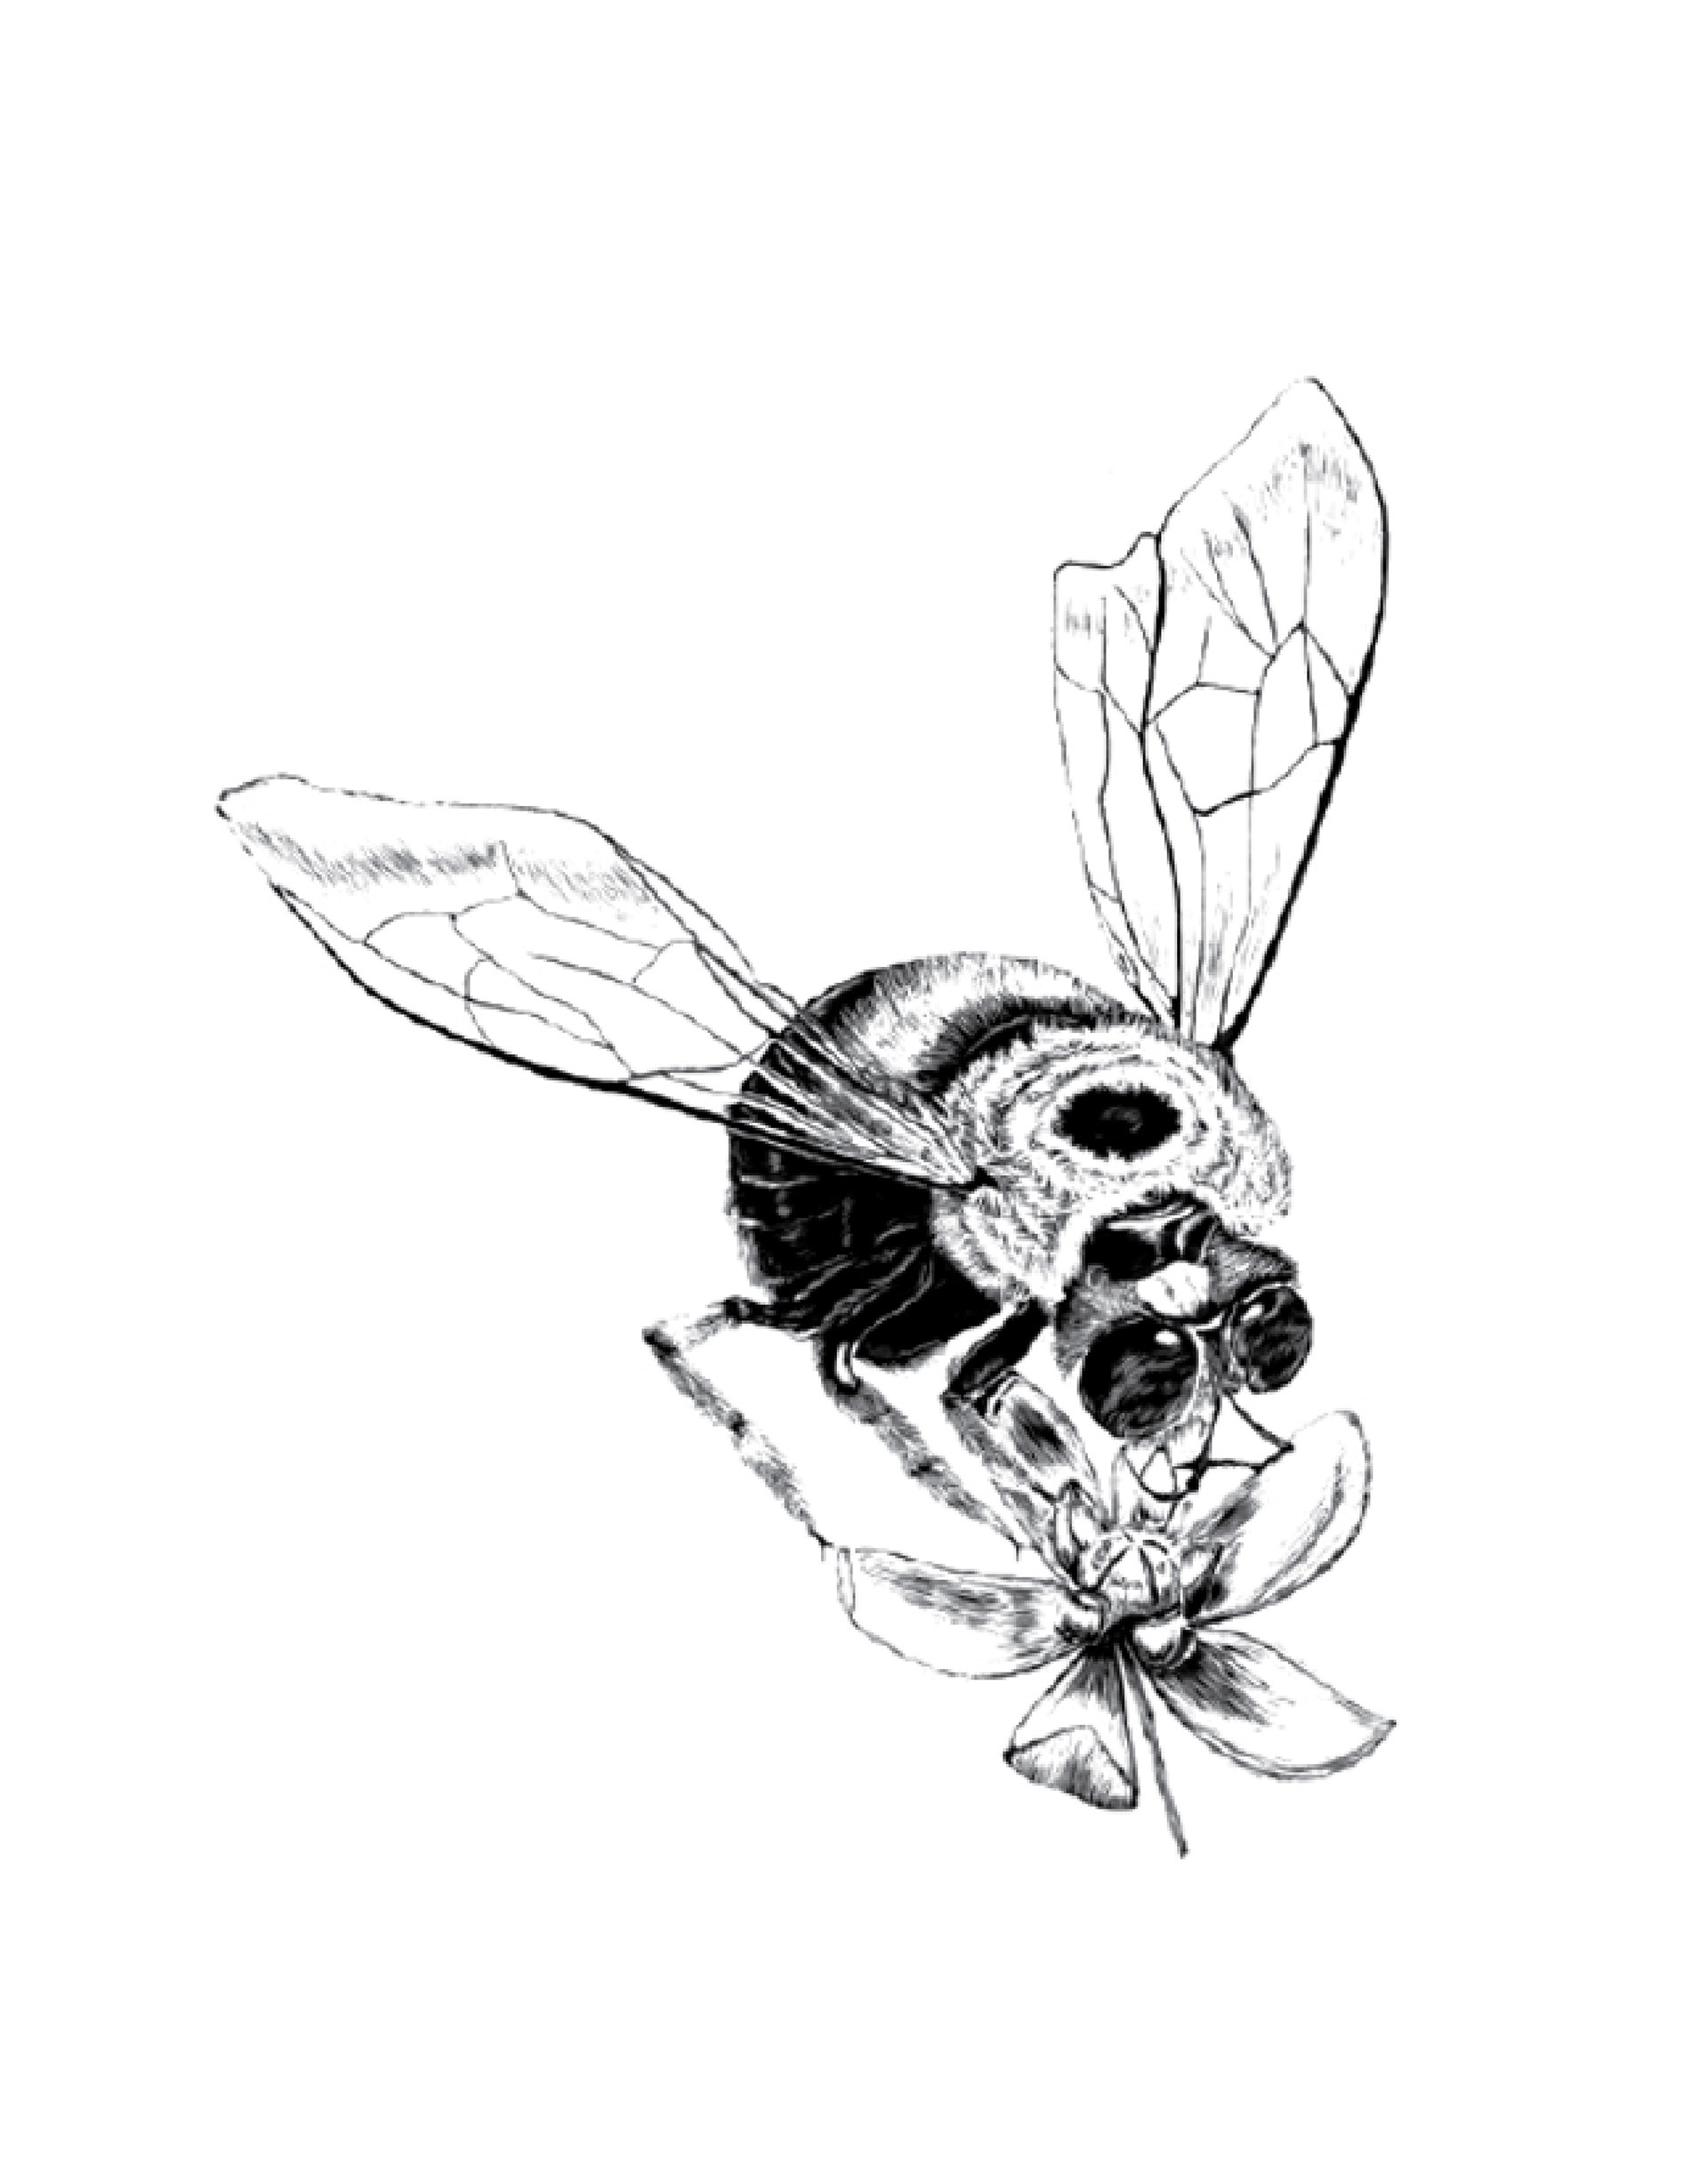 Bumble Bee Scientific Drawing at GetDrawings.com | Free for personal ...